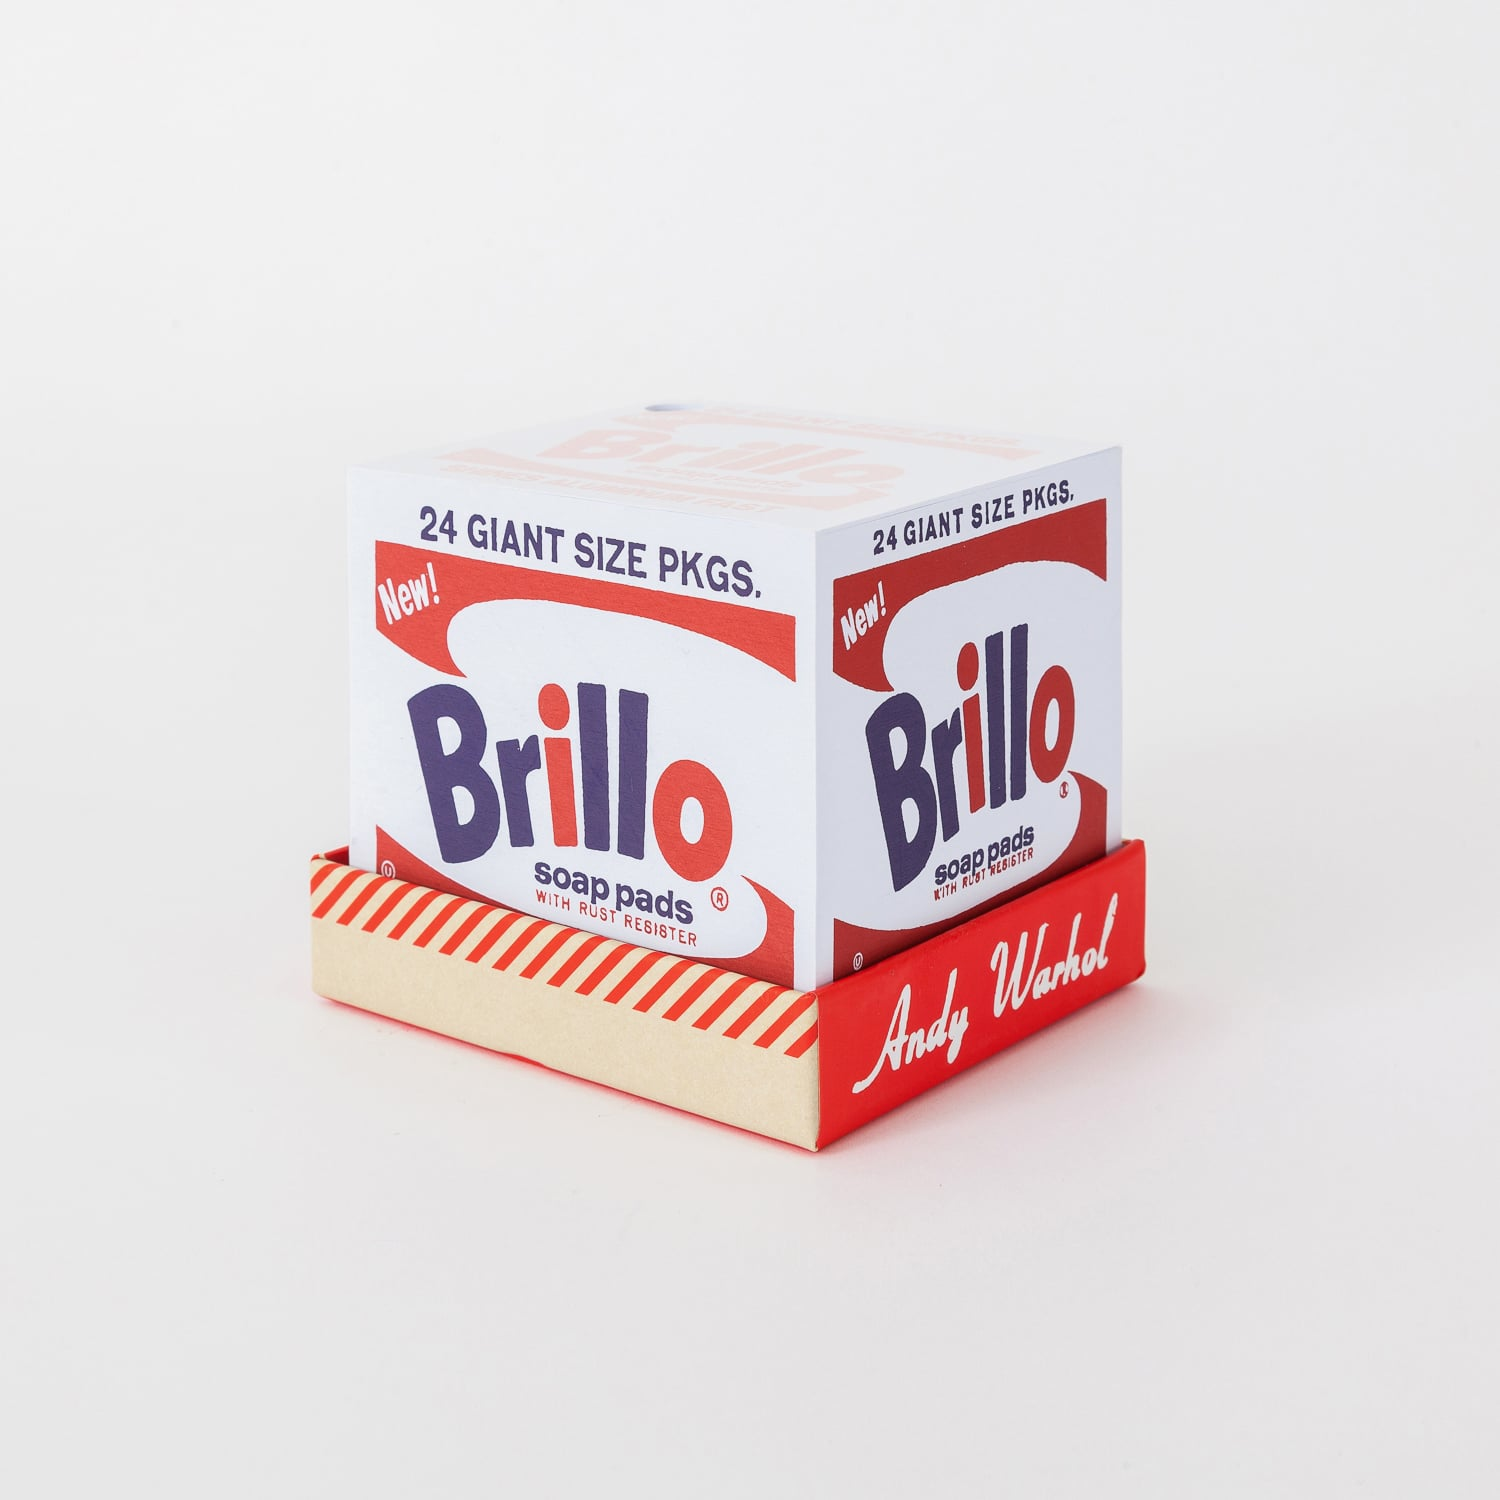 Warhol Brillo memory block